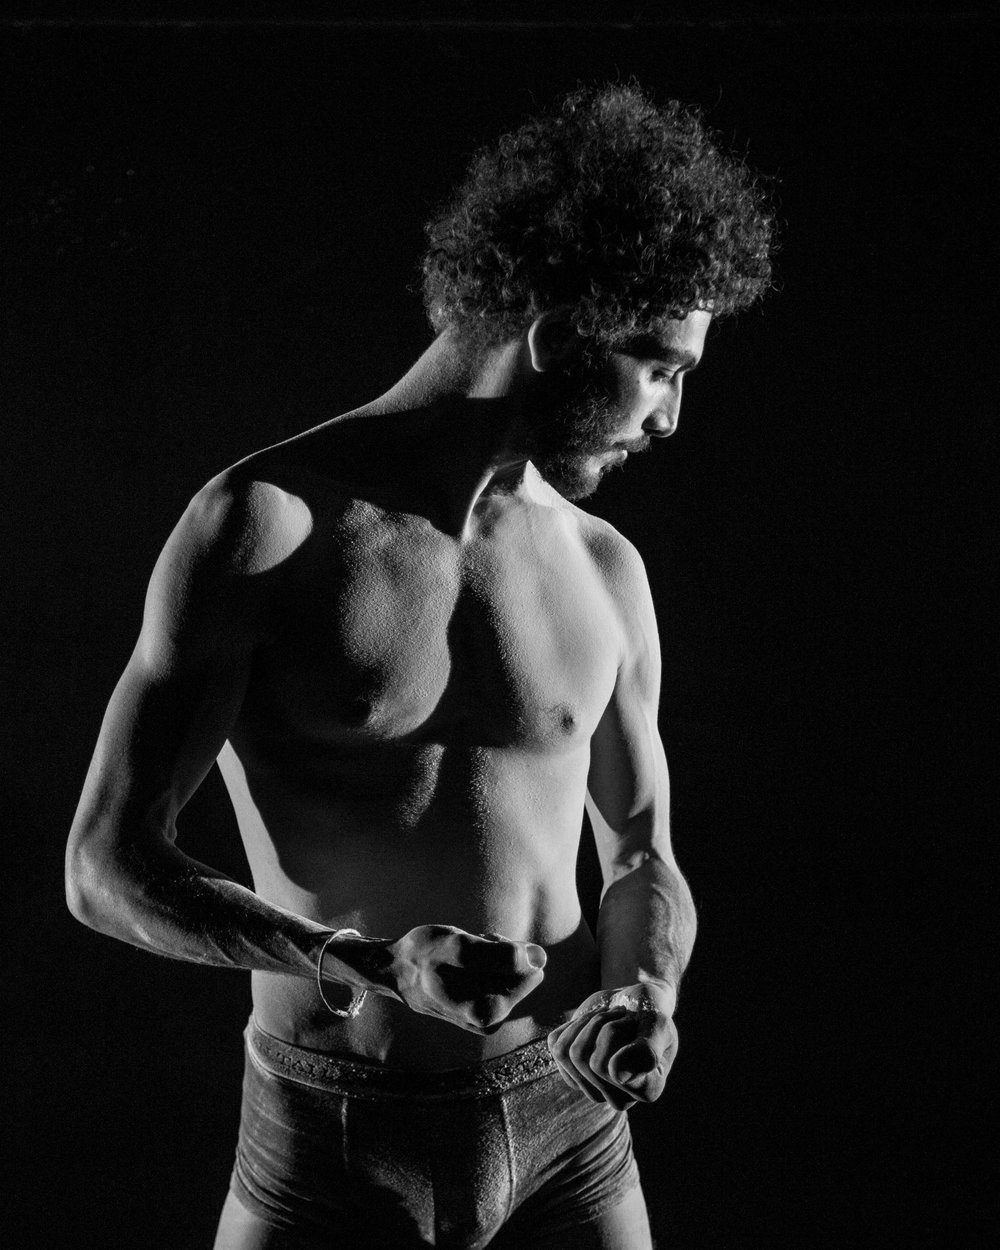 Dancer Performer Pierre Geagea